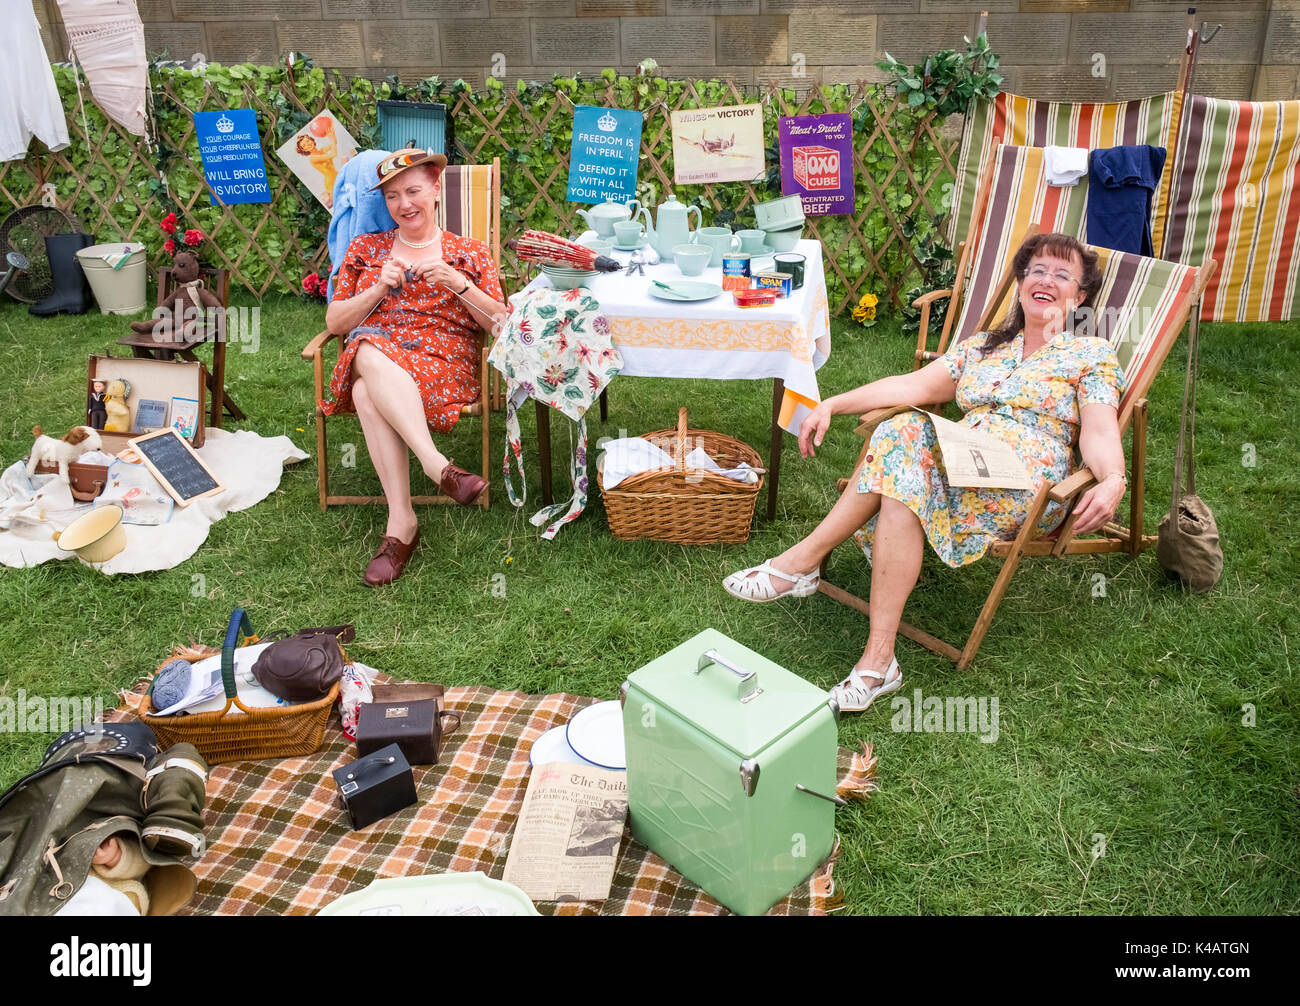 Two women re-enactors at a 1940s Living History camp, Derbyshire, UK - Stock Image